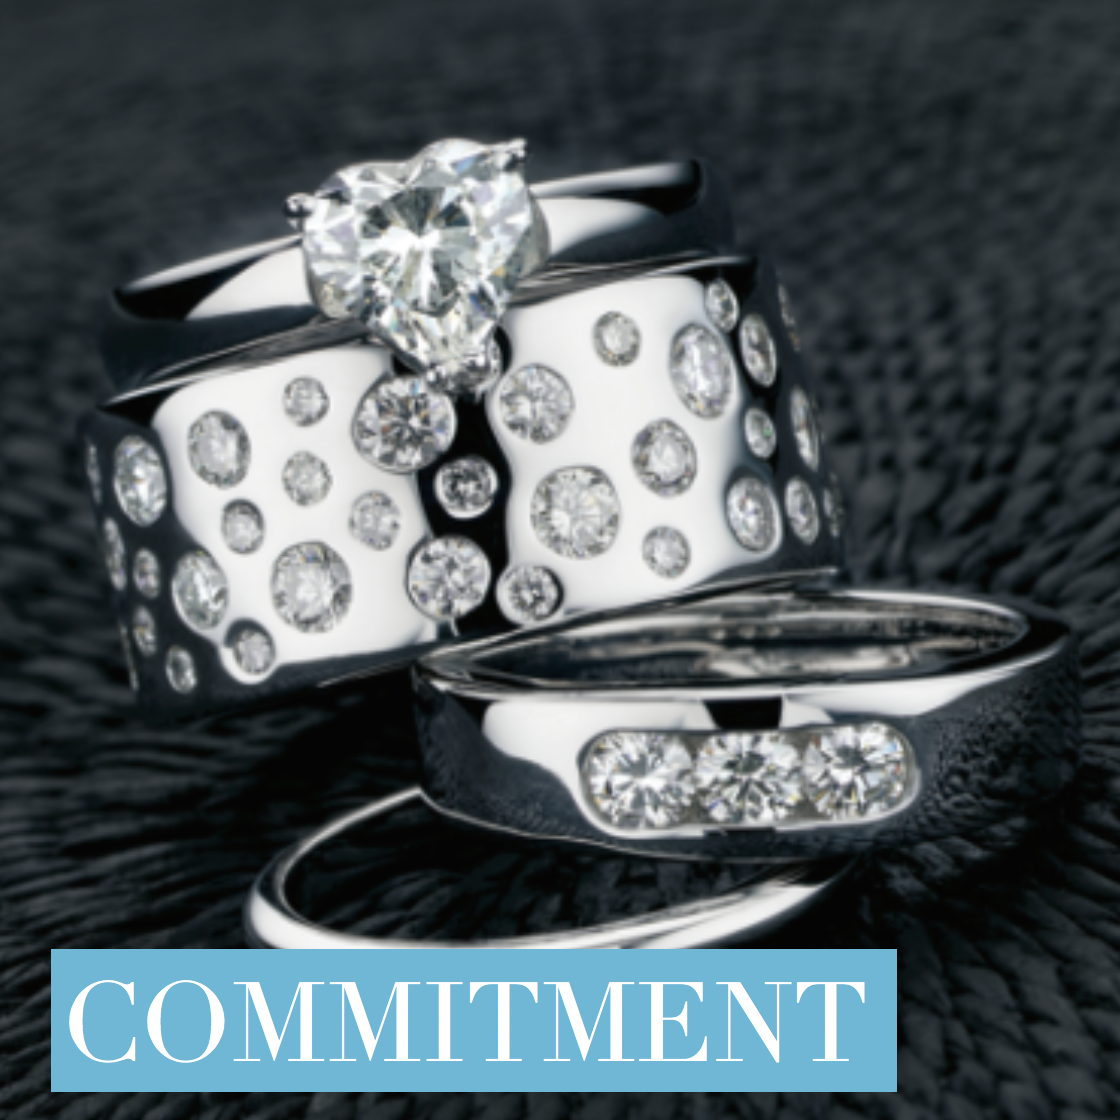 Image of Pure Envy Commitment Rings